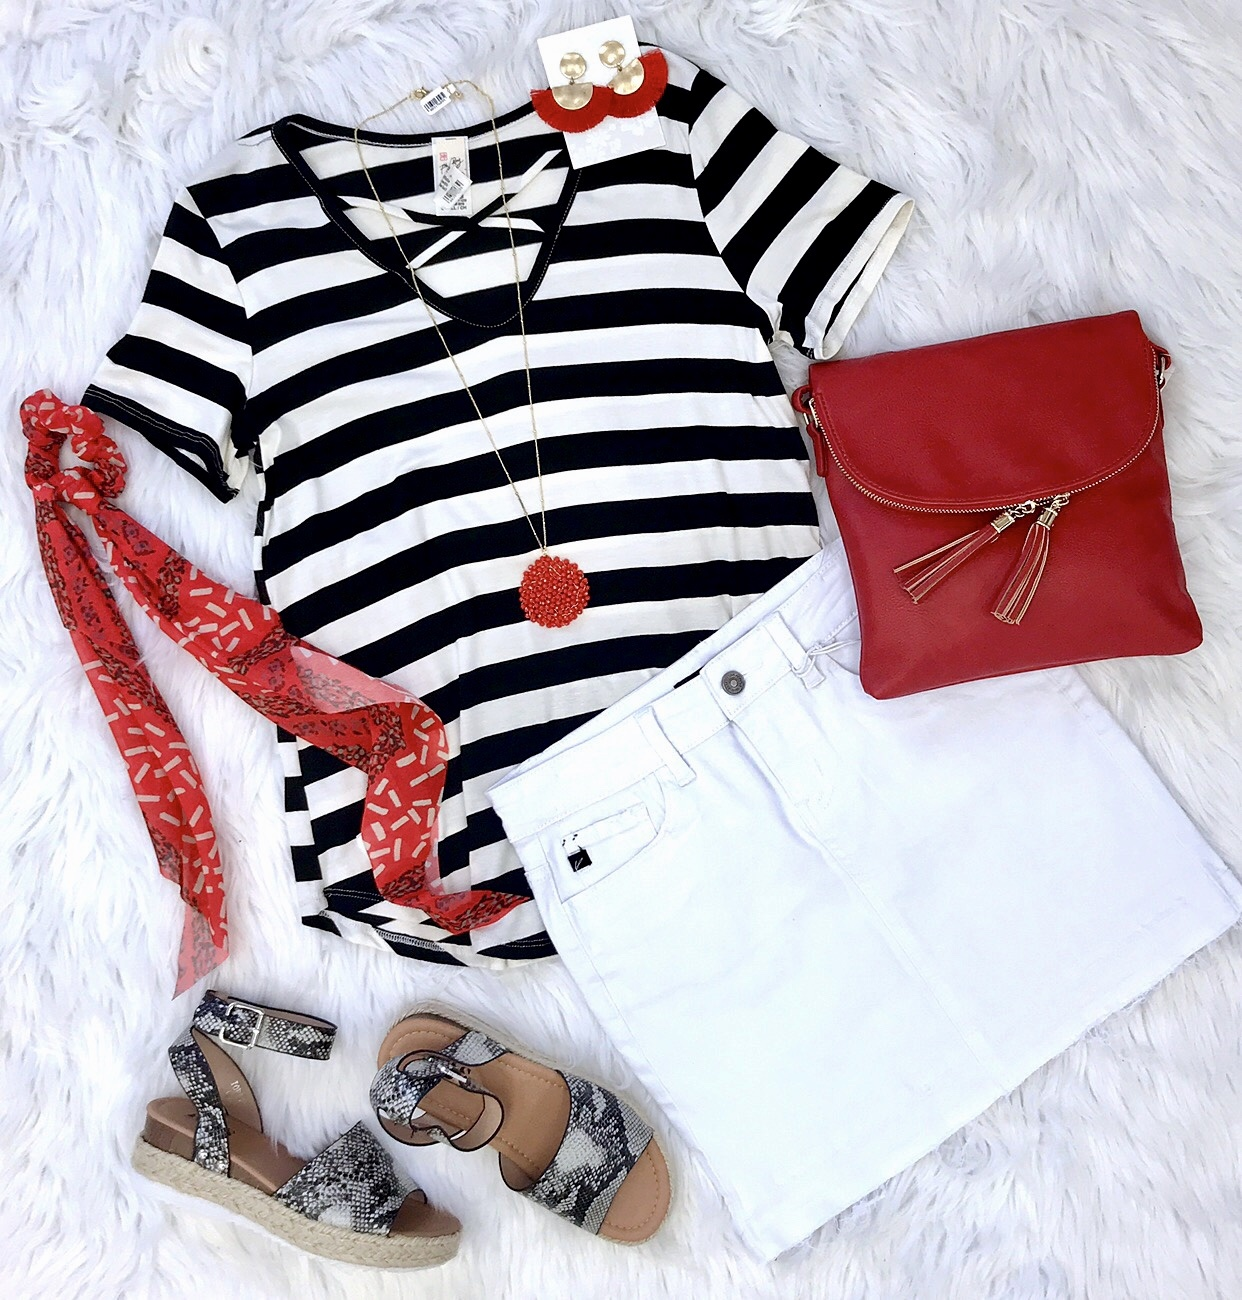 Black and White Striped Top with Criss Cross Detail